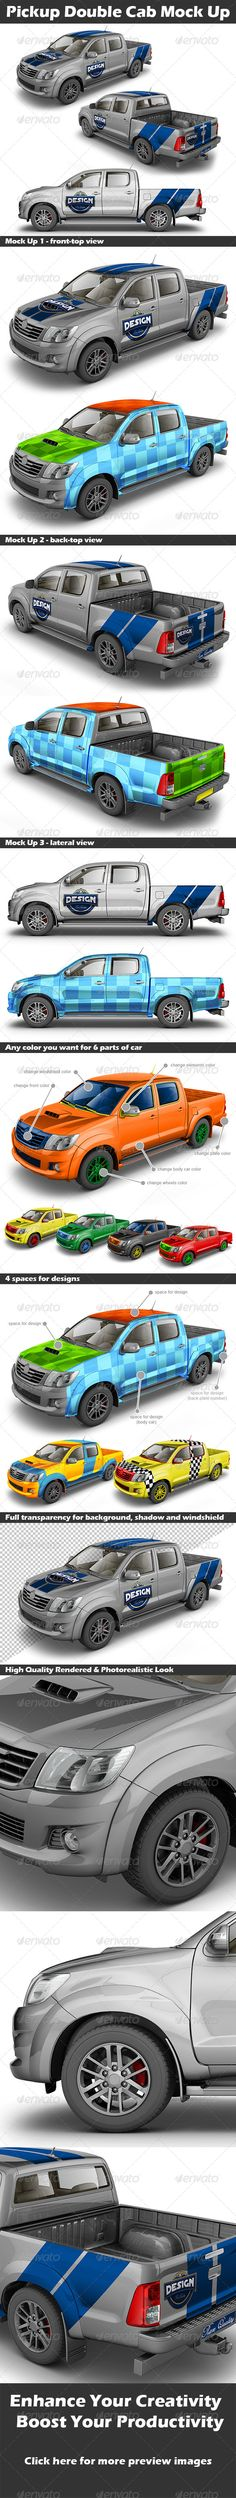 Pickup Double Cab Mock Up — Photoshop PSD #bakkie #cab • Available here → https://graphicriver.net/item/pickup-double-cab-mock-up/4564263?ref=pxcr